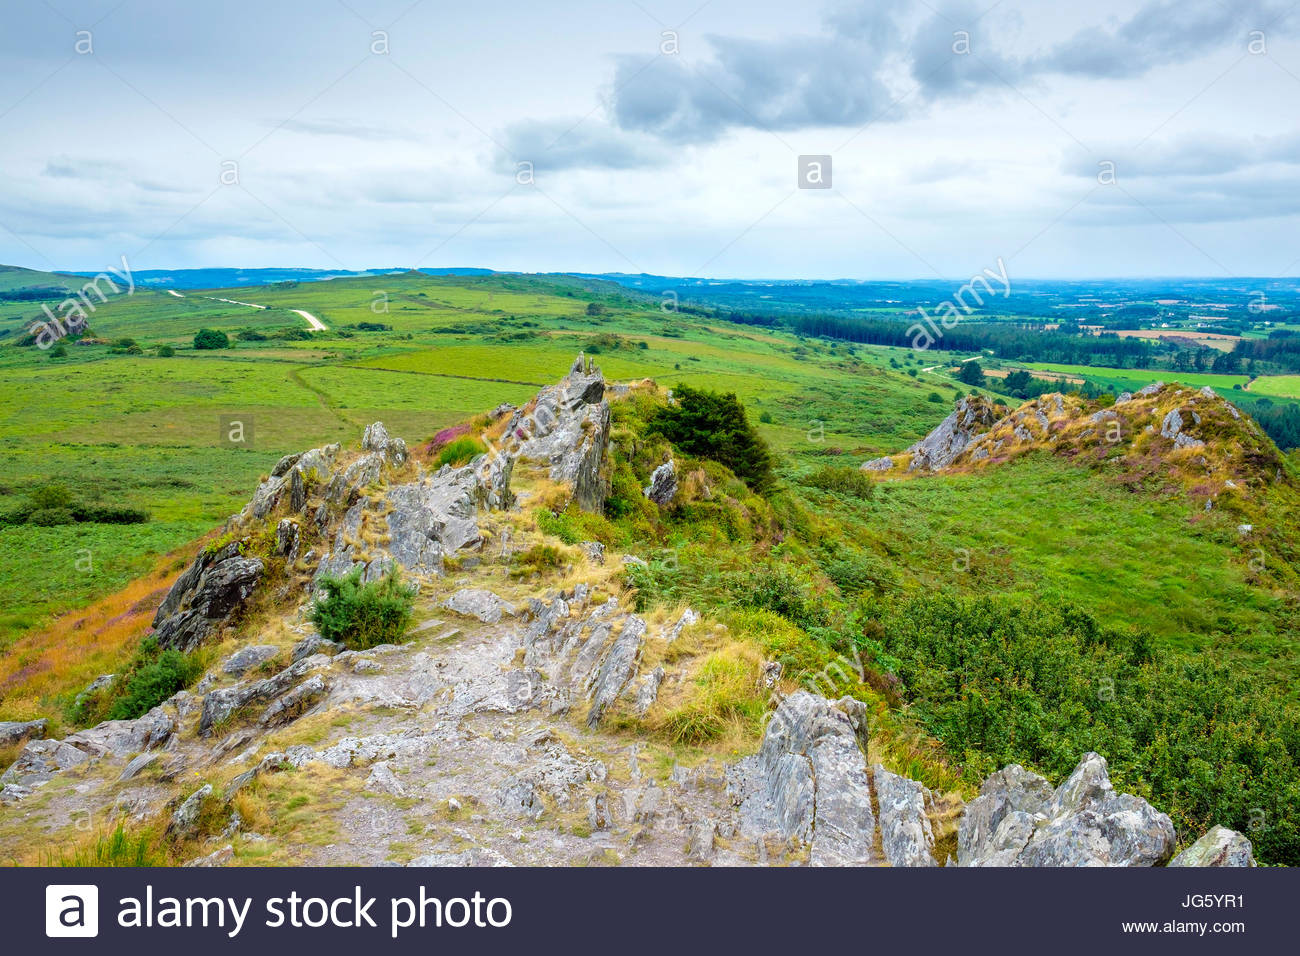 France, Brittany, Finistere, Plouneour-Menez. View from Roc'h Trevezel in the Monts d'Arree, Parc naturel - Stock Image